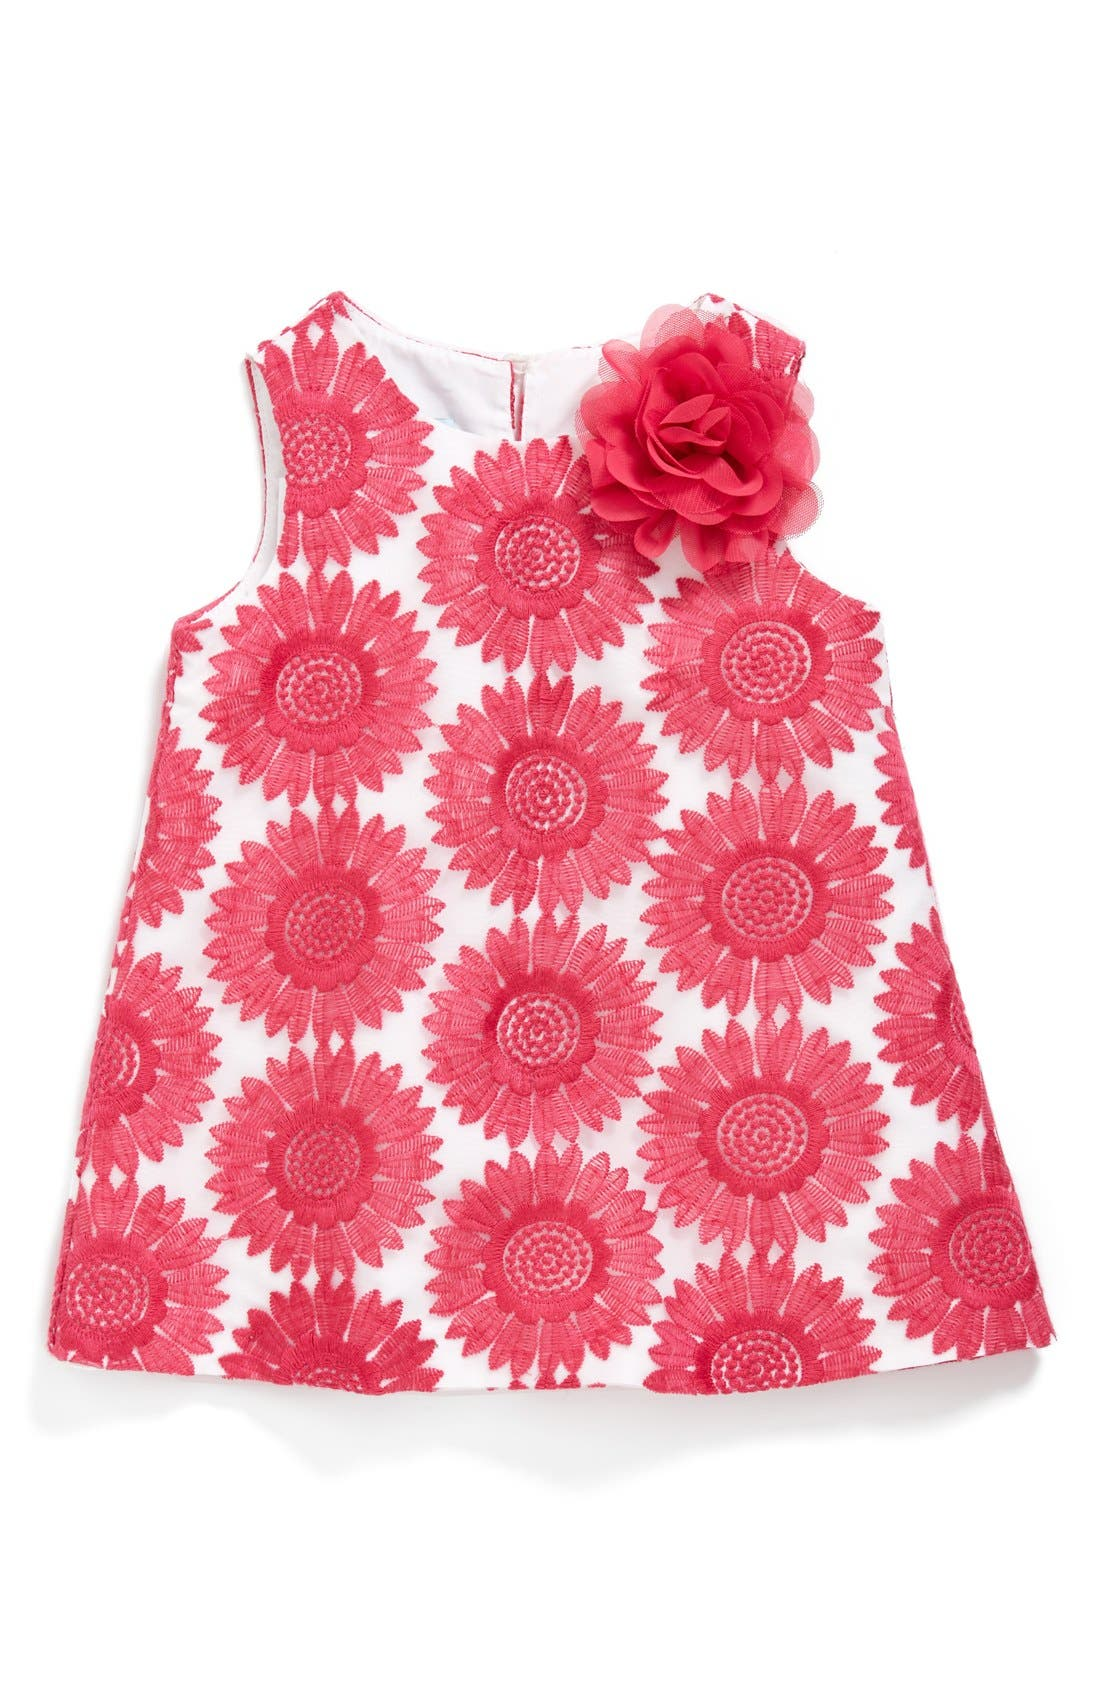 Alternate Image 1 Selected - Pippa & Julie Floral Embroidered Sleeveless Dress (Baby Girls)